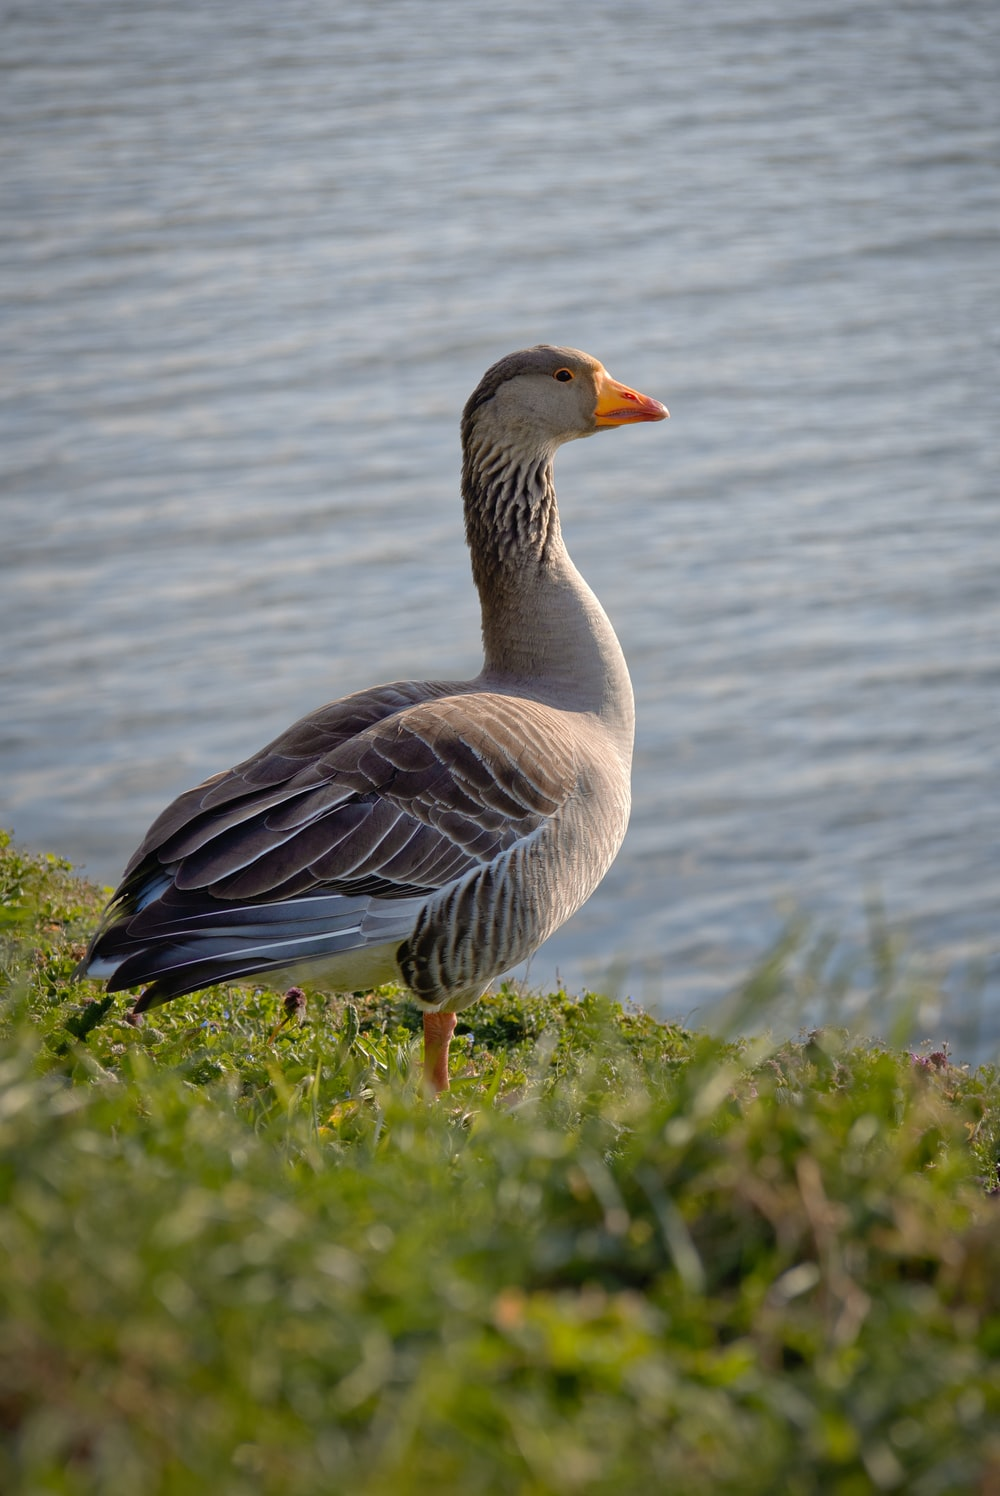 brown and white duck on green grass field near body of water during daytime